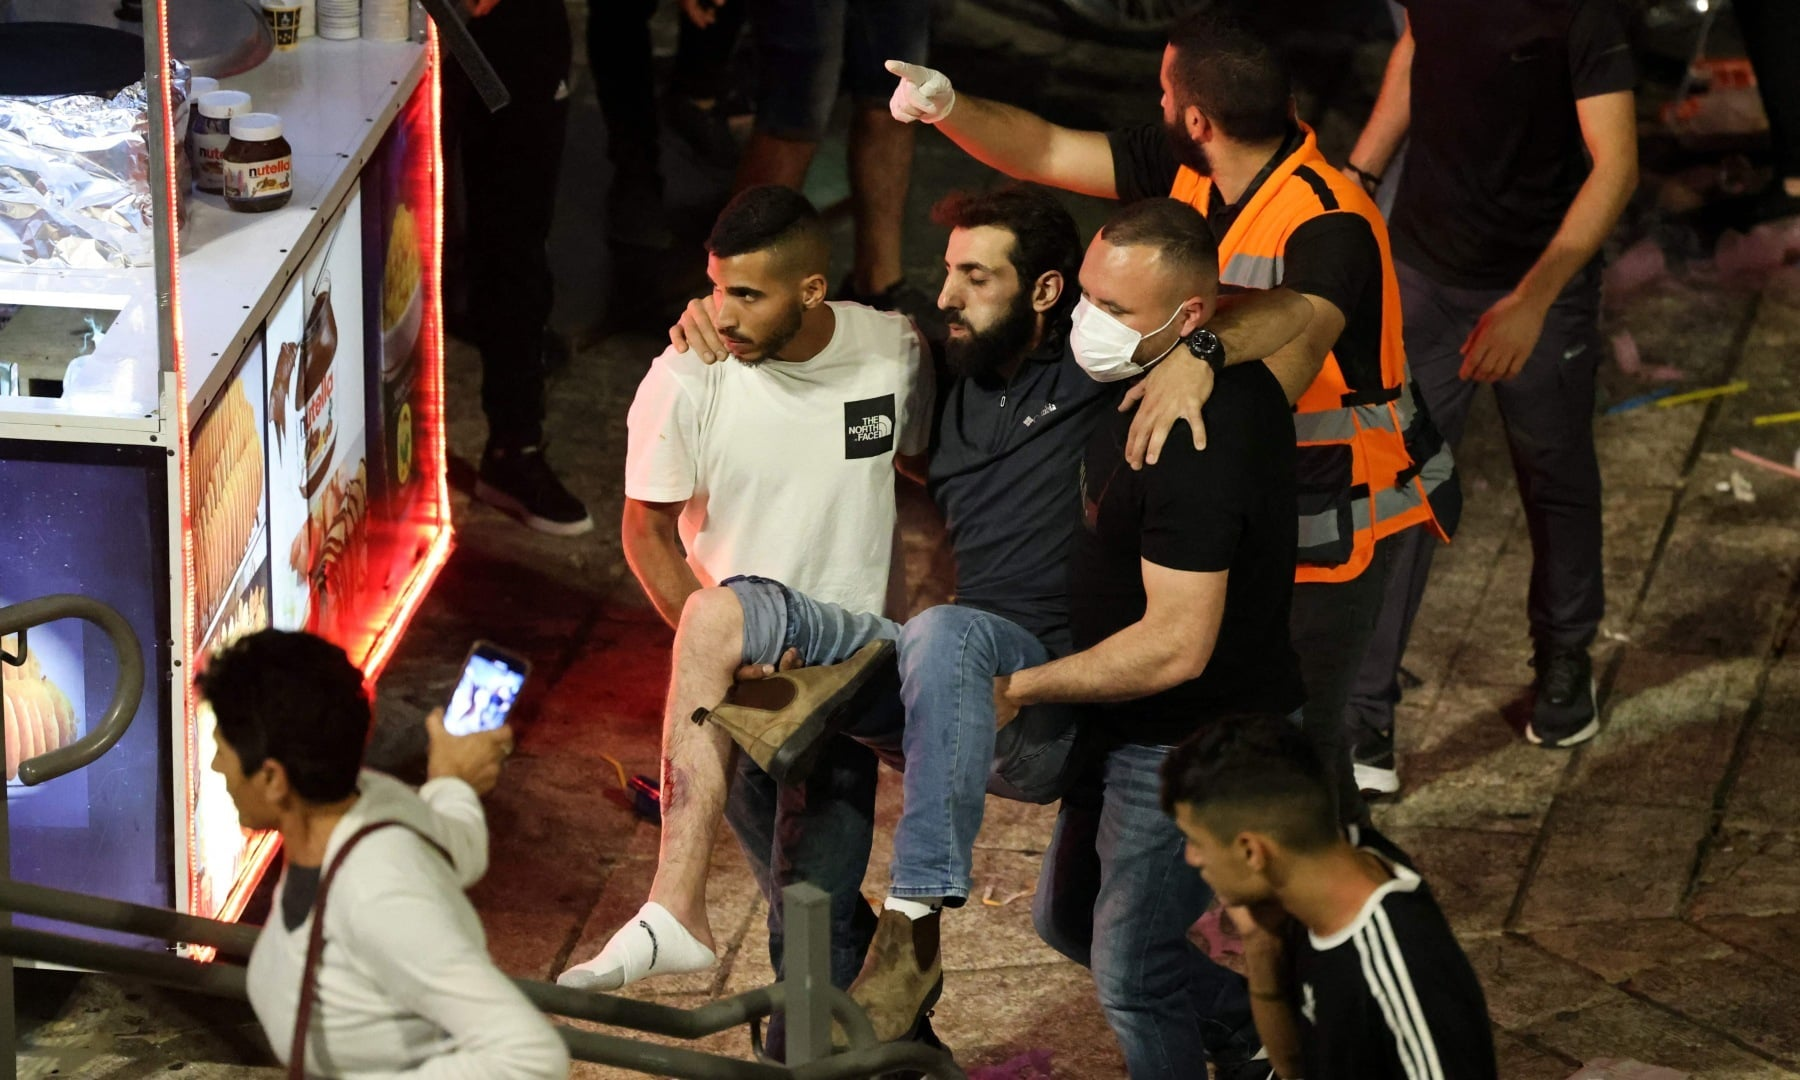 Palestinians assist a wounded protester amid clashes with Israeli security forces outside the Damascus Gate in Jerusalem's Old City on May 8. — AFP